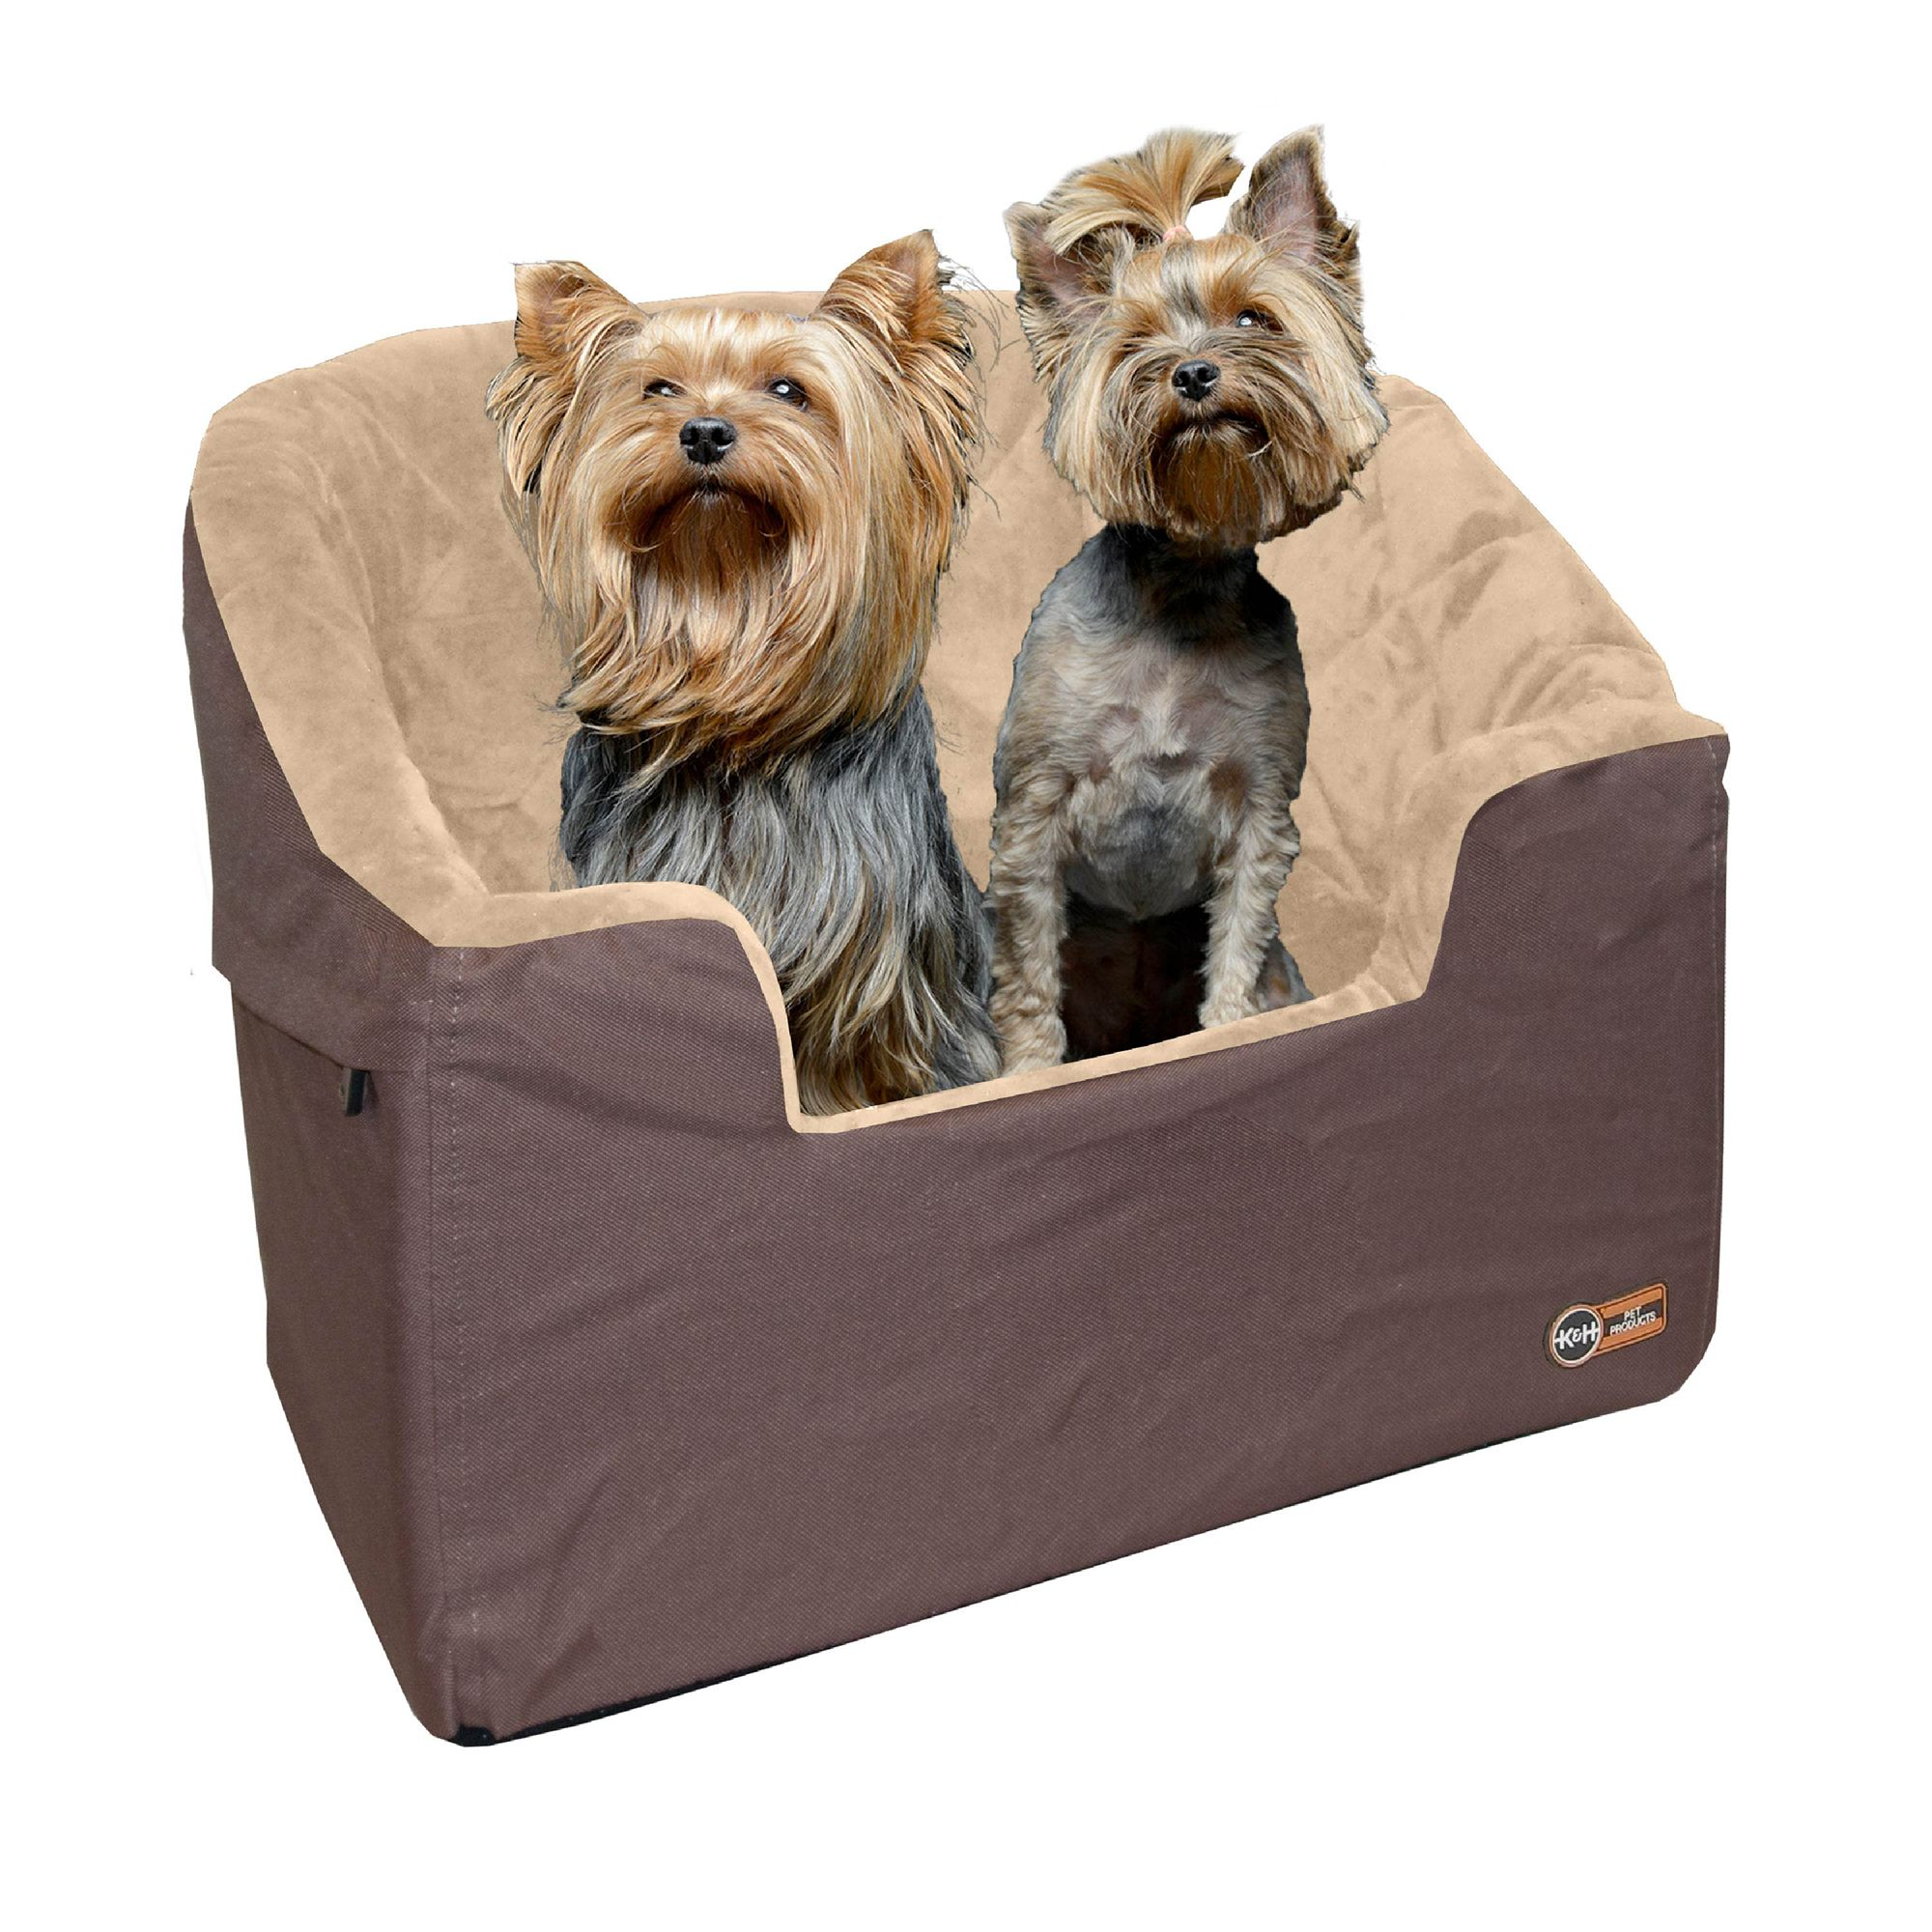 KandH Bucket Booster Pet Seat size: Large, Tan